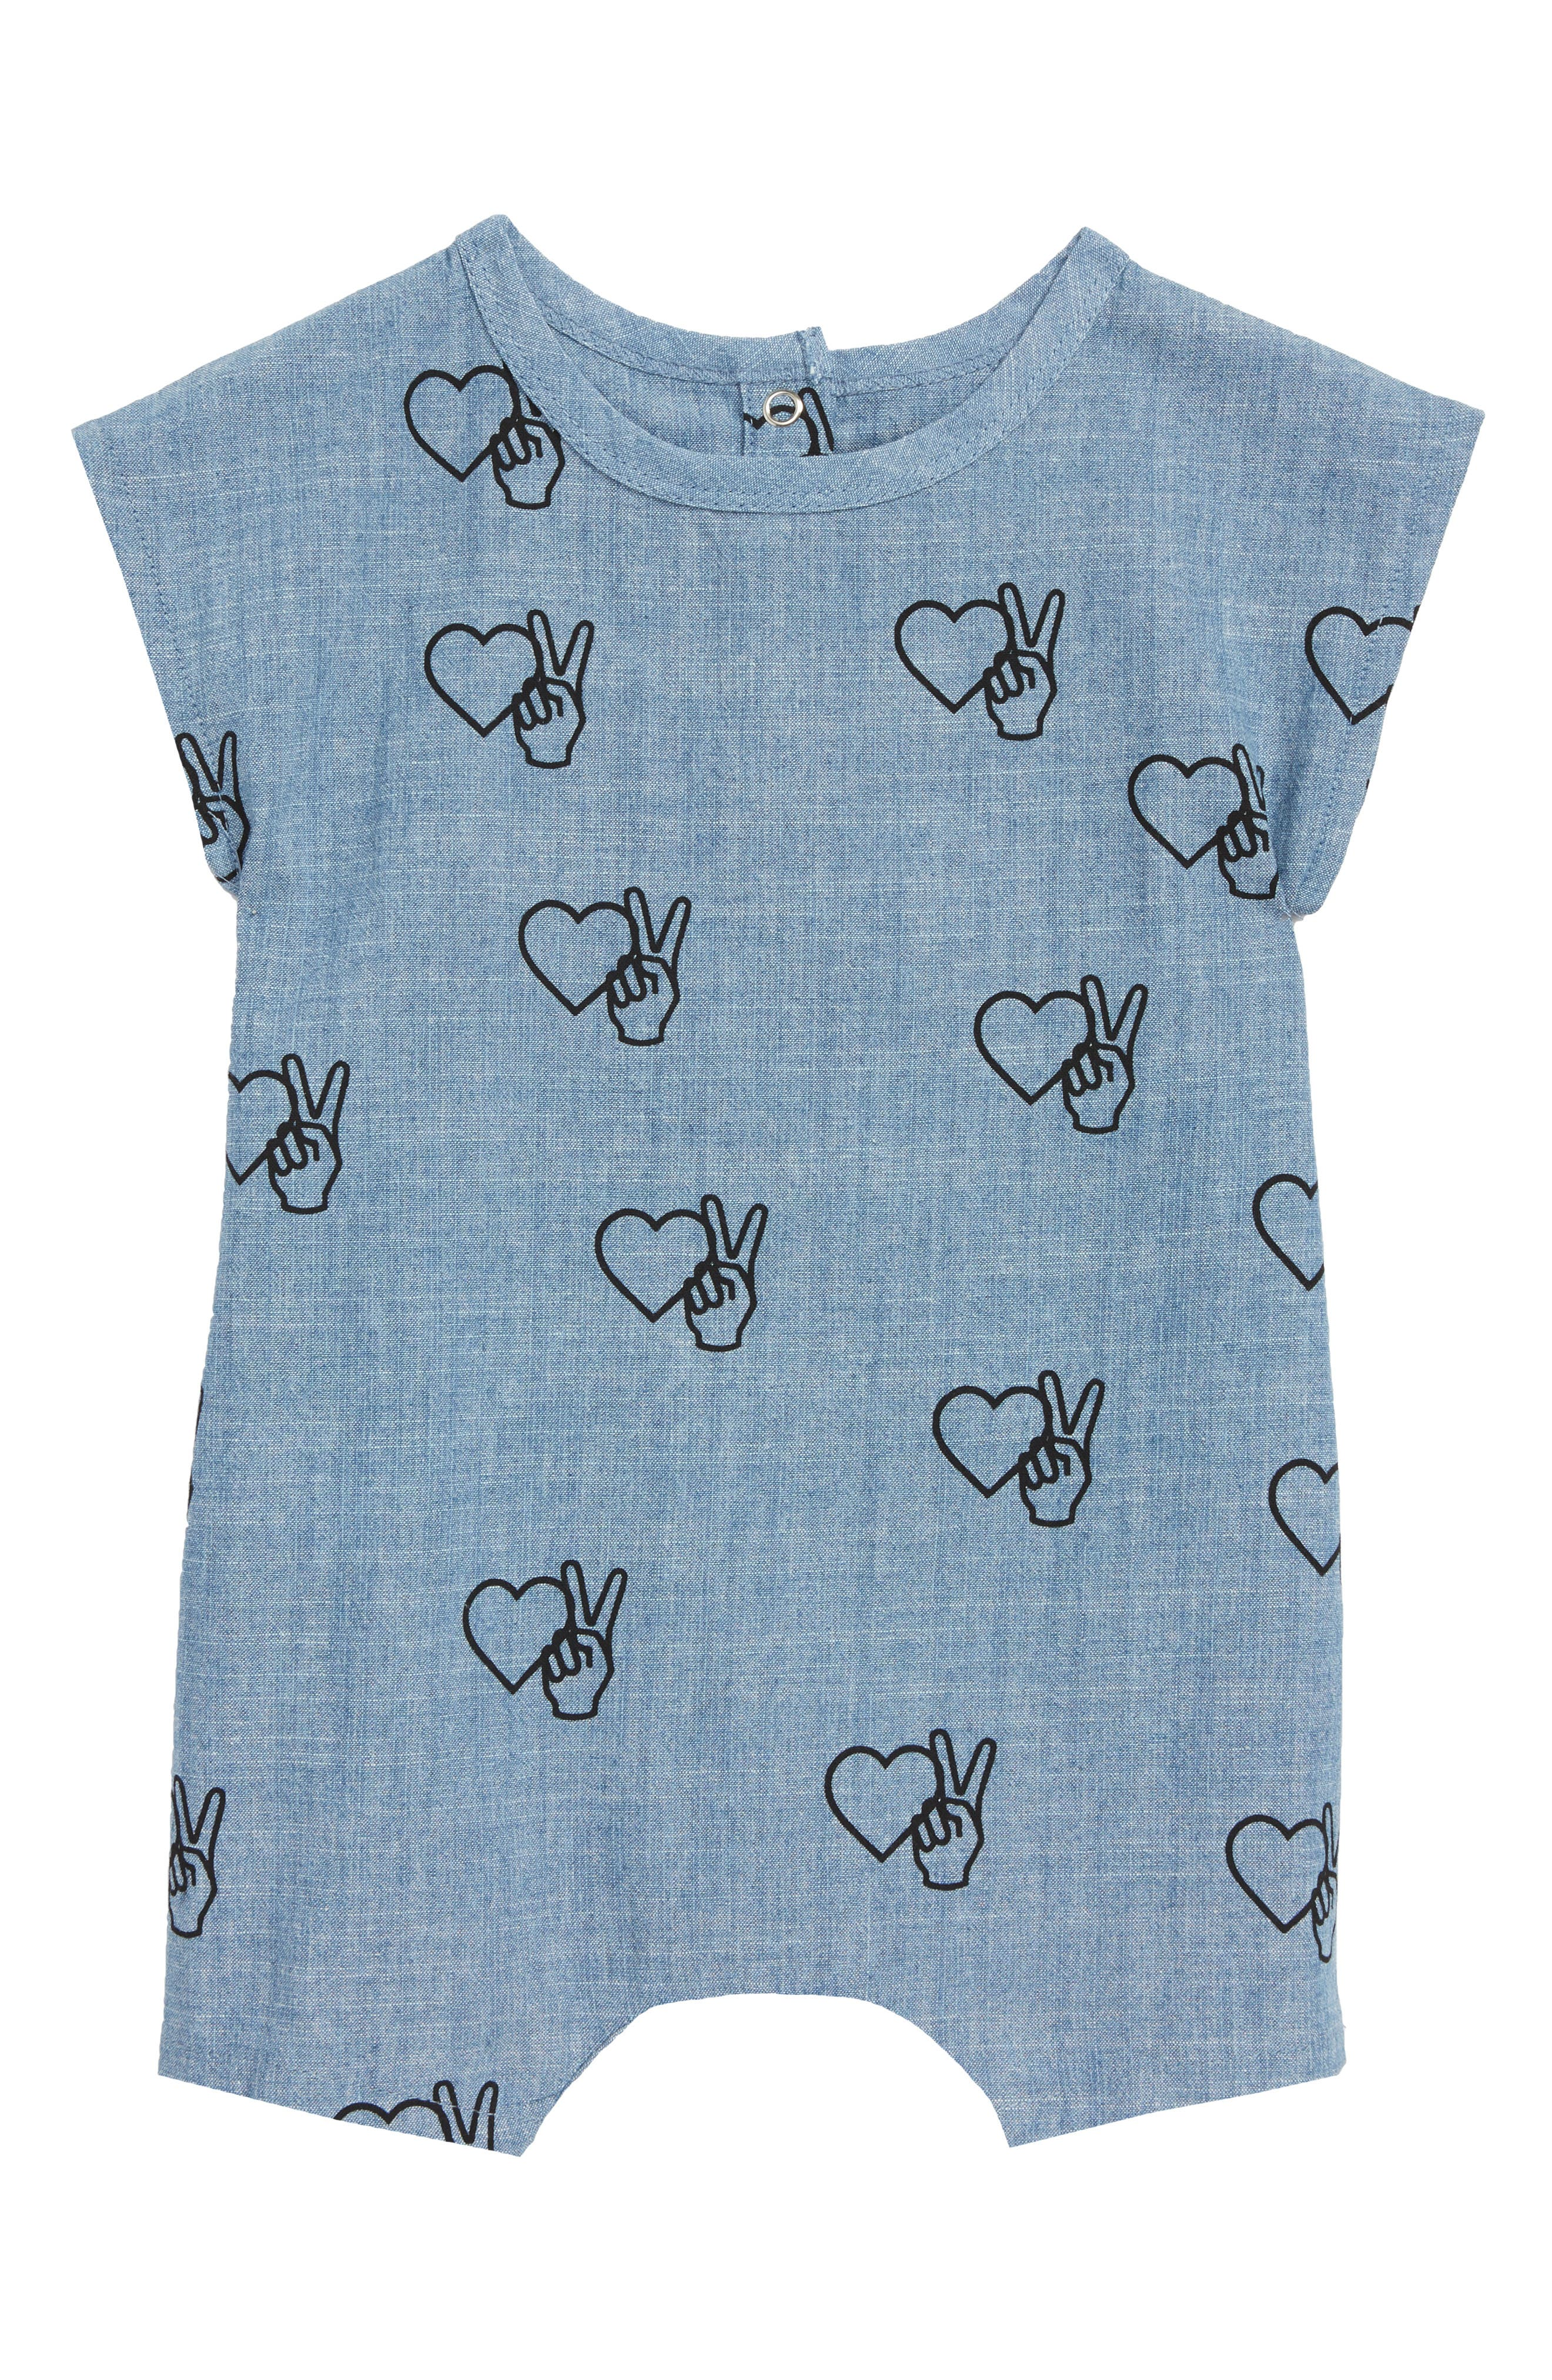 Girl Almighty Chambray Romper,                             Main thumbnail 1, color,                             400